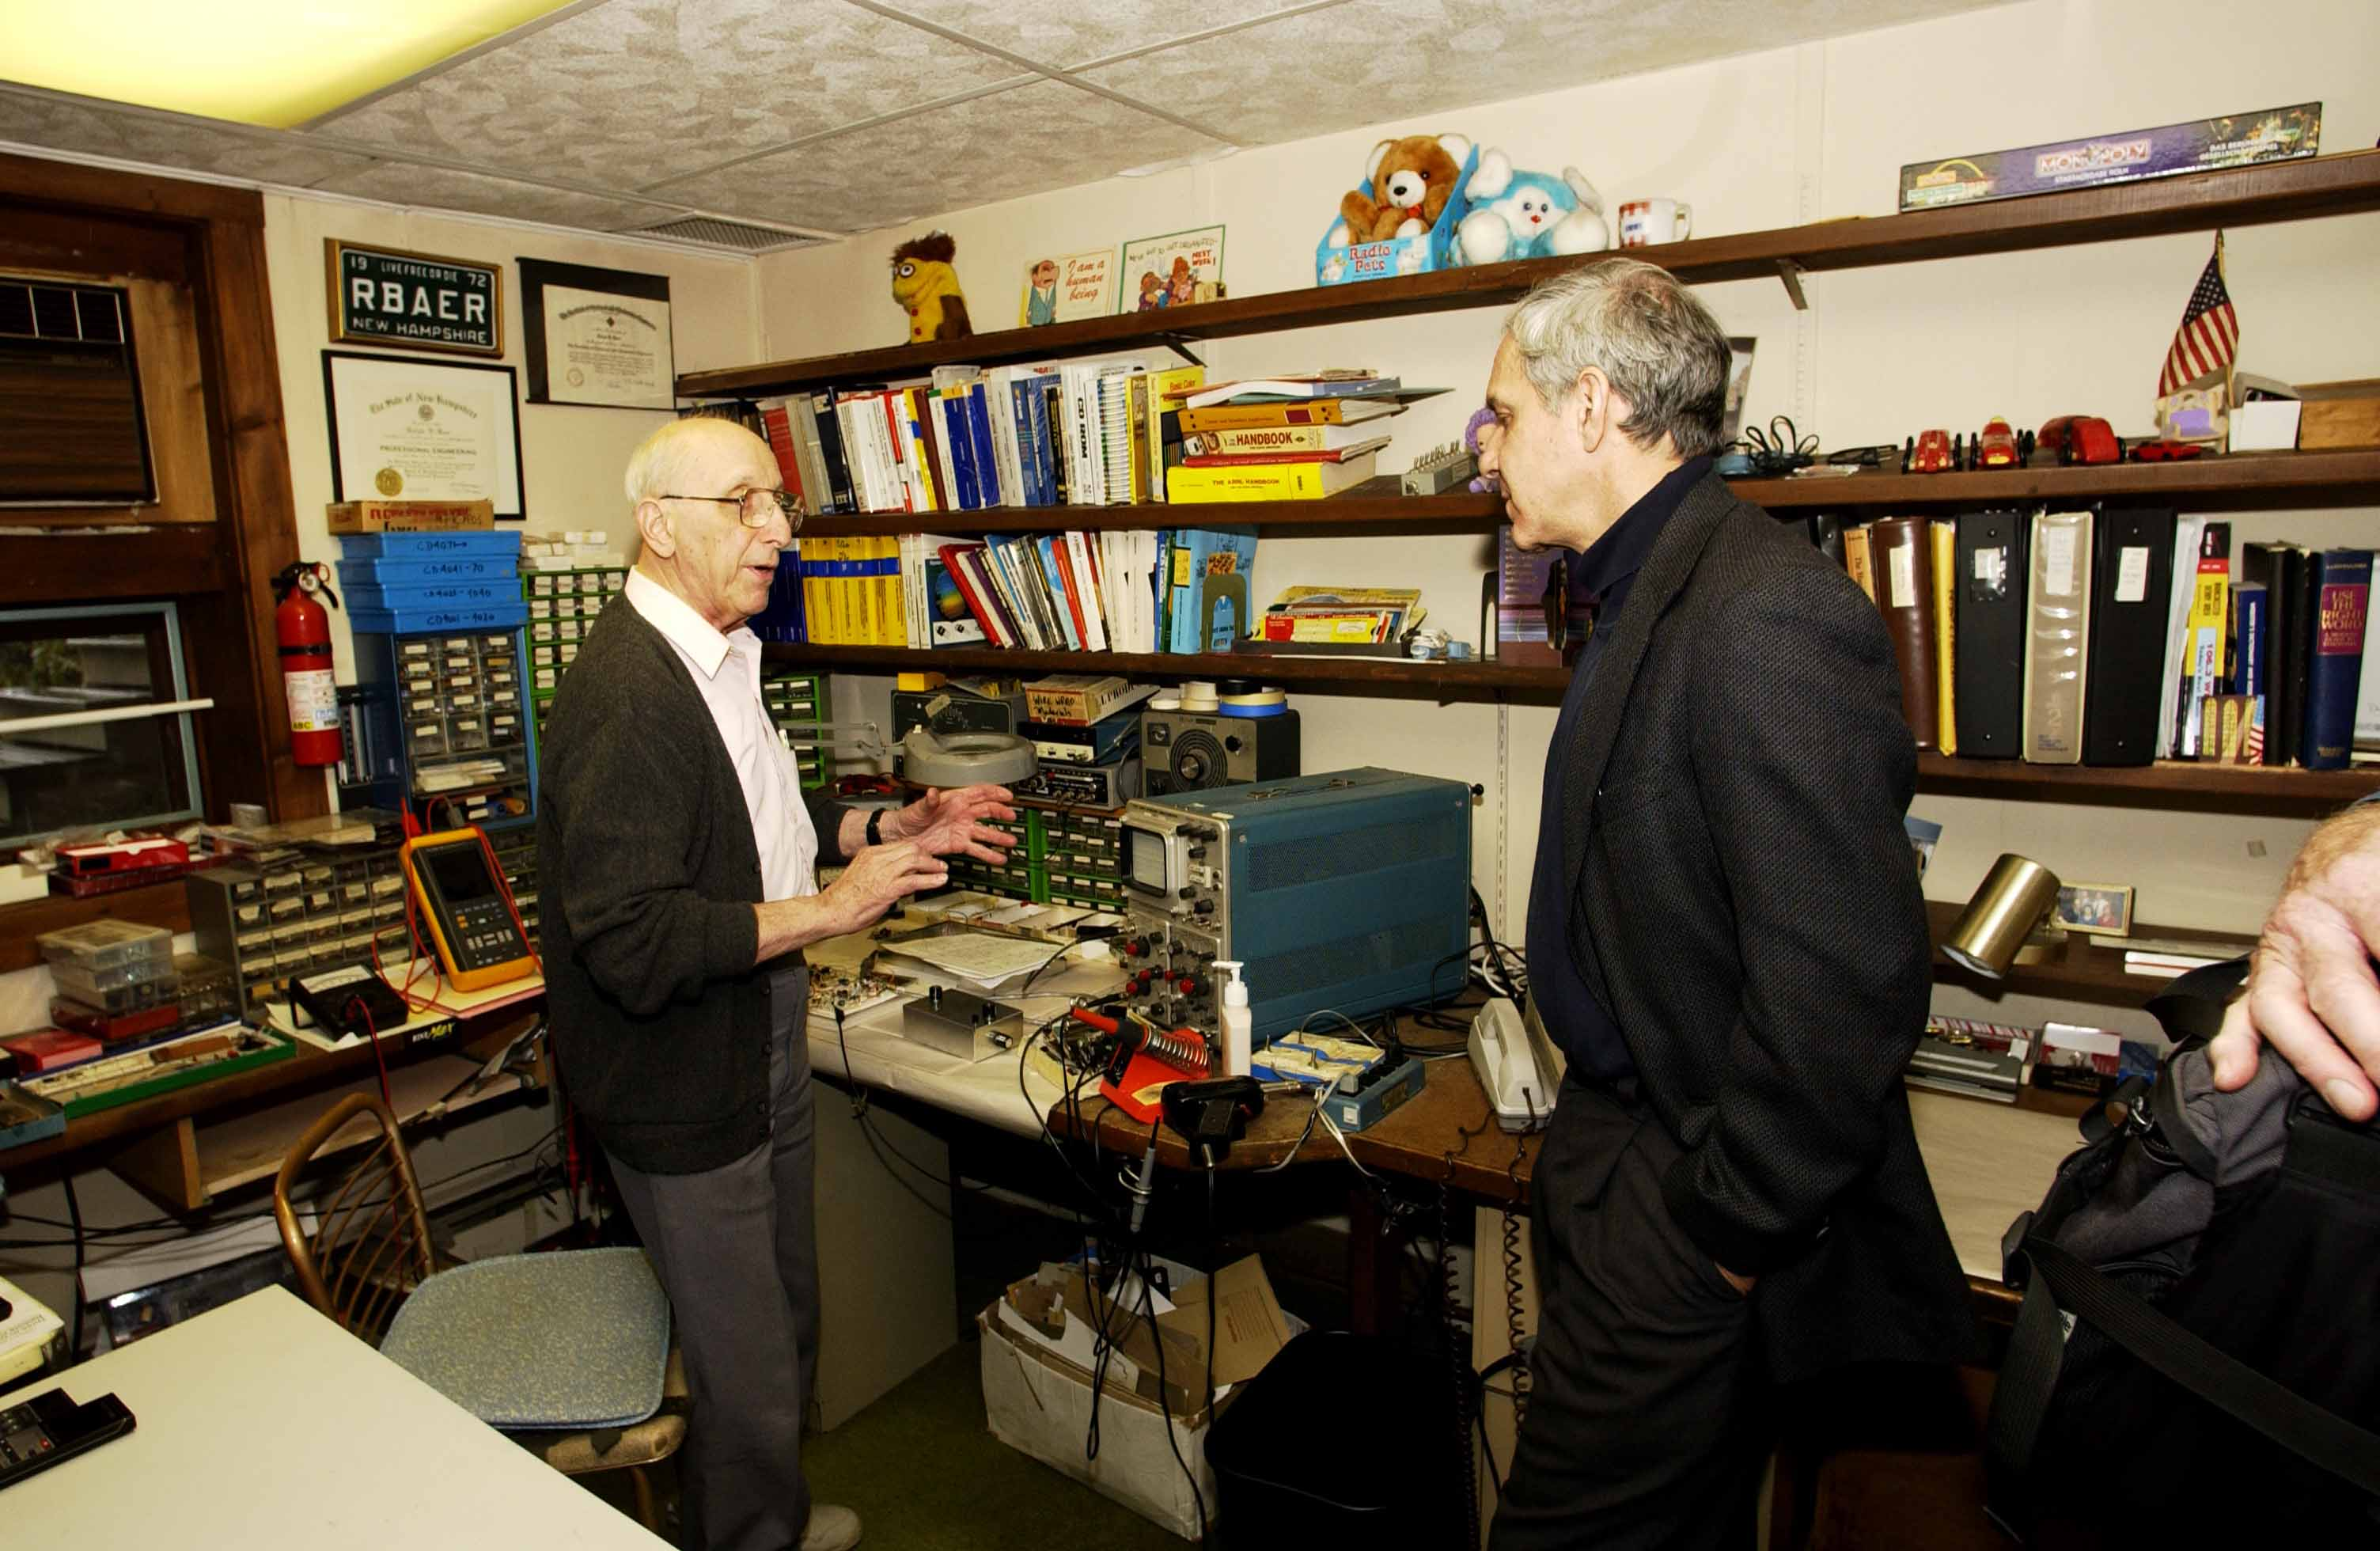 Video game inventor Ralph Baer shows Lemelson Center Director Art Molella his basement workshop.